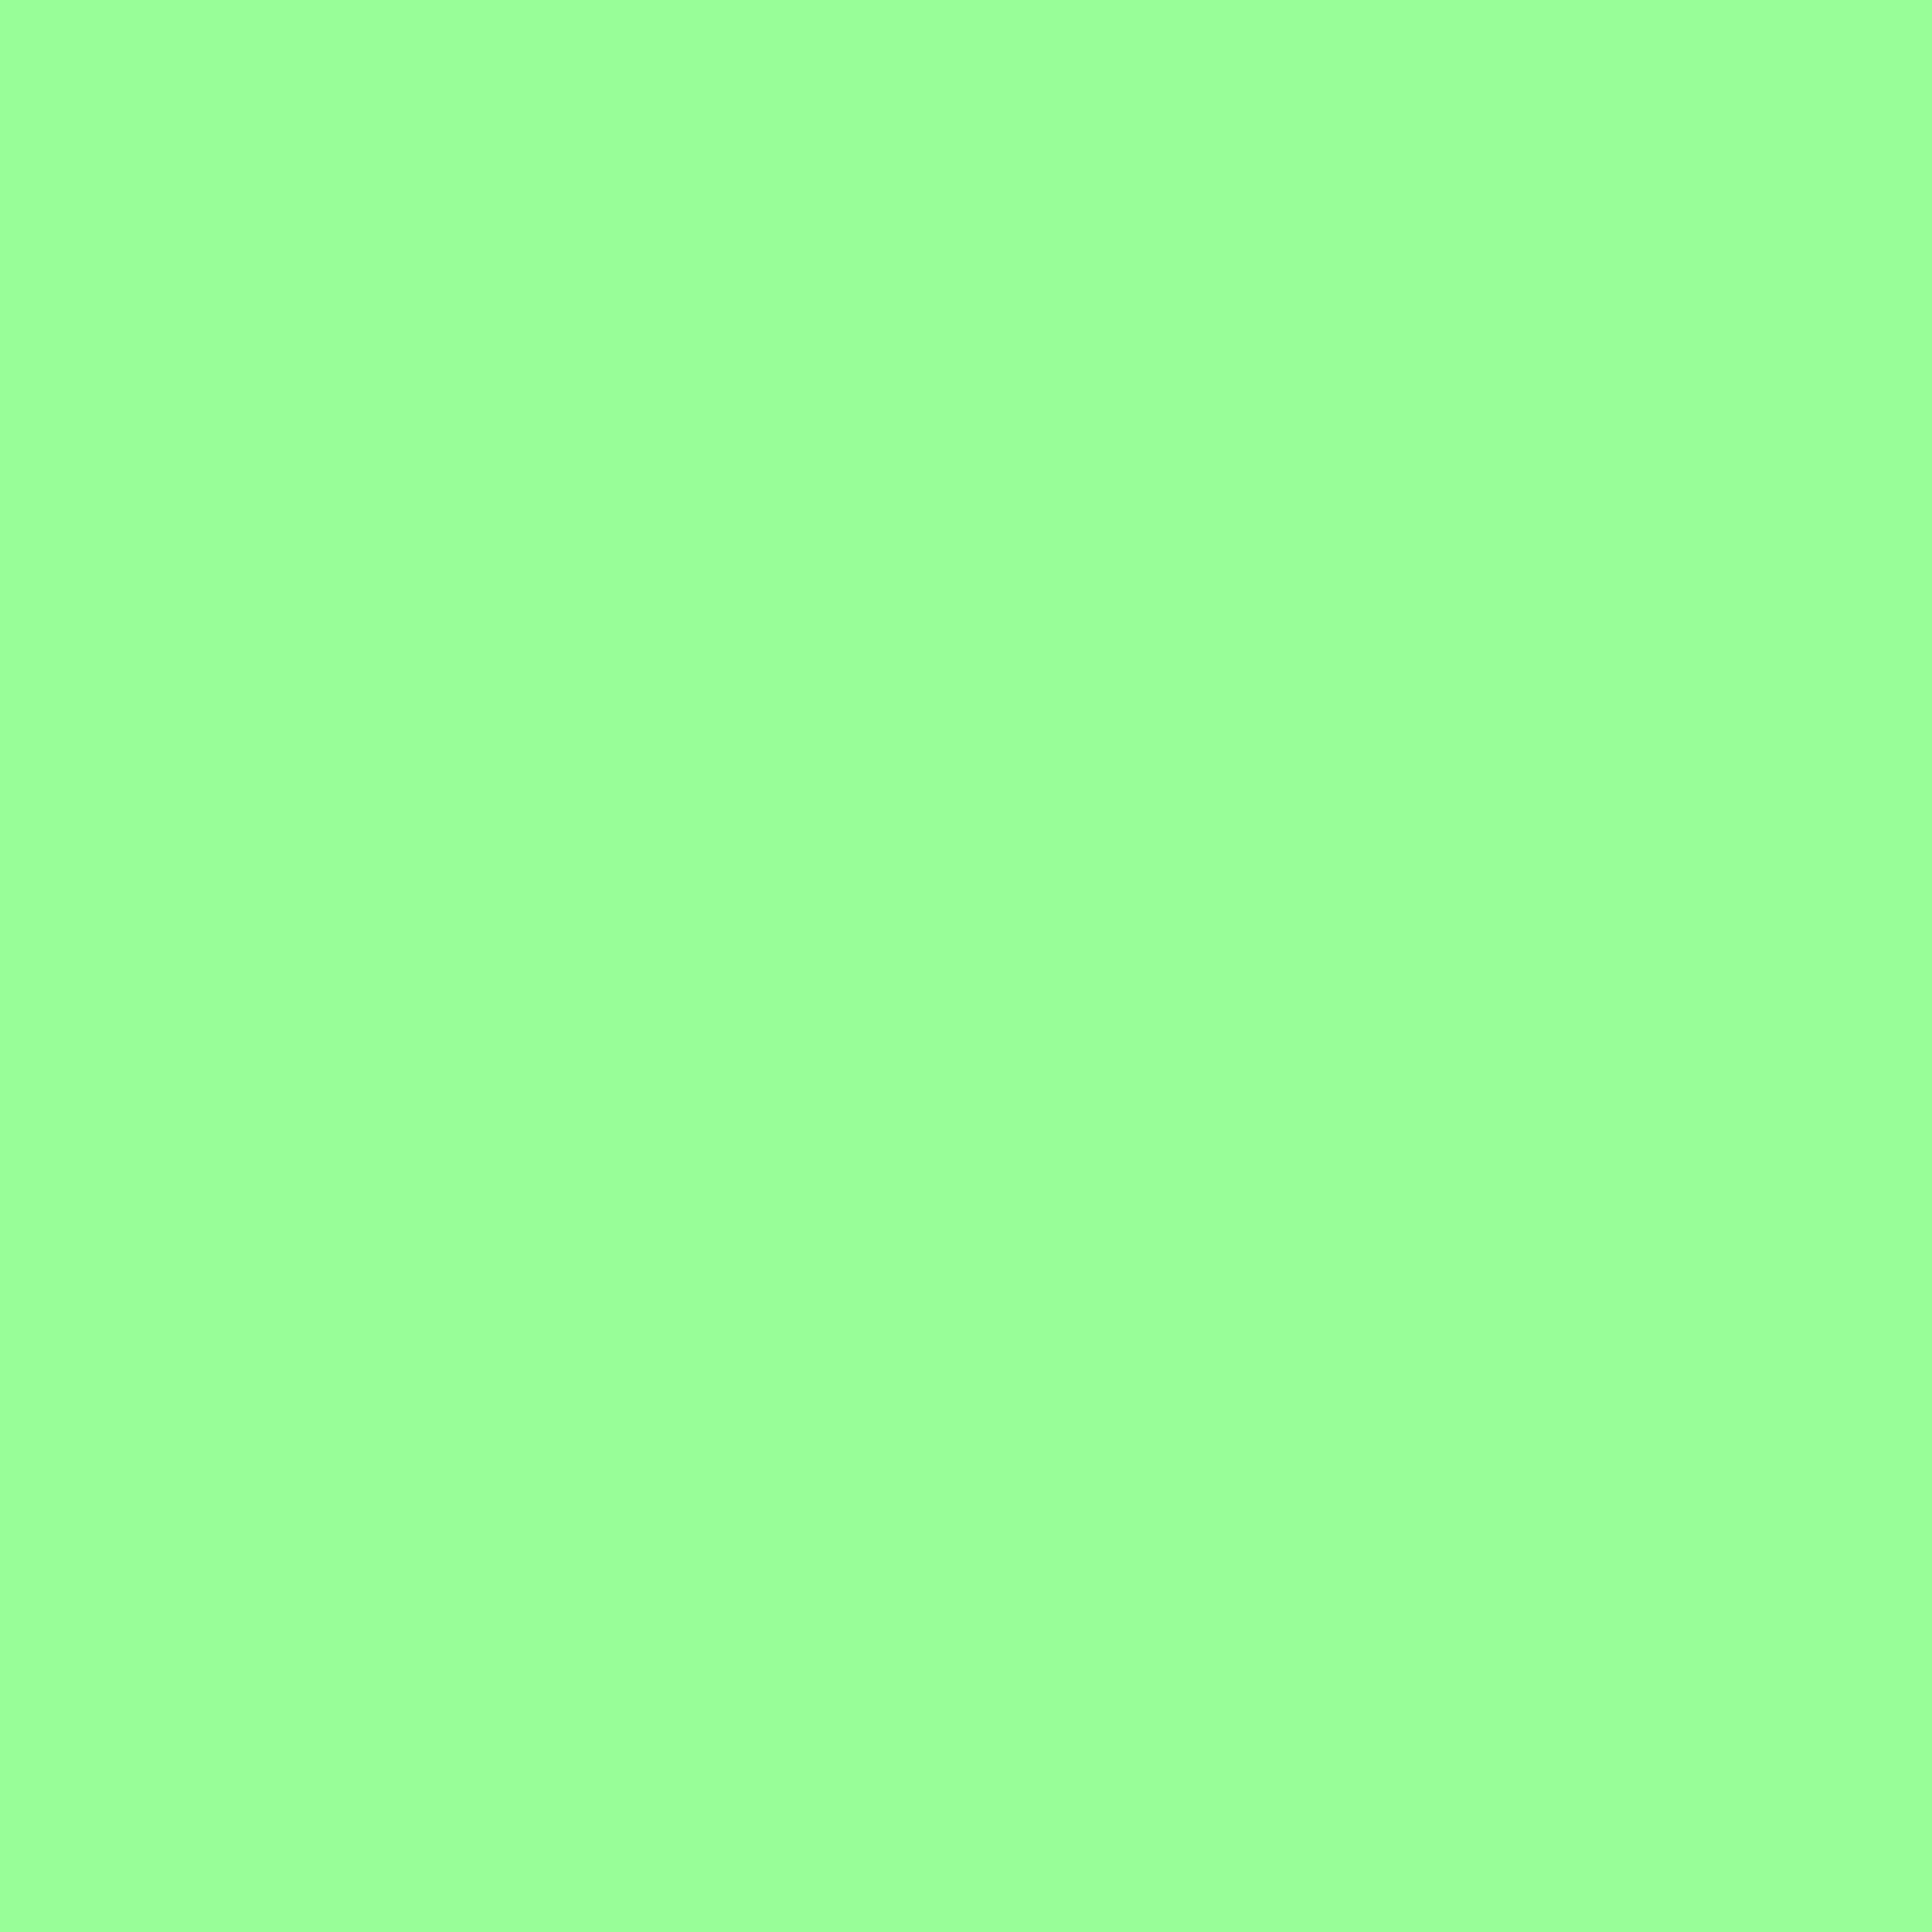 Solid Mint Green Background 2048x2048 mint green solid 2048x2048